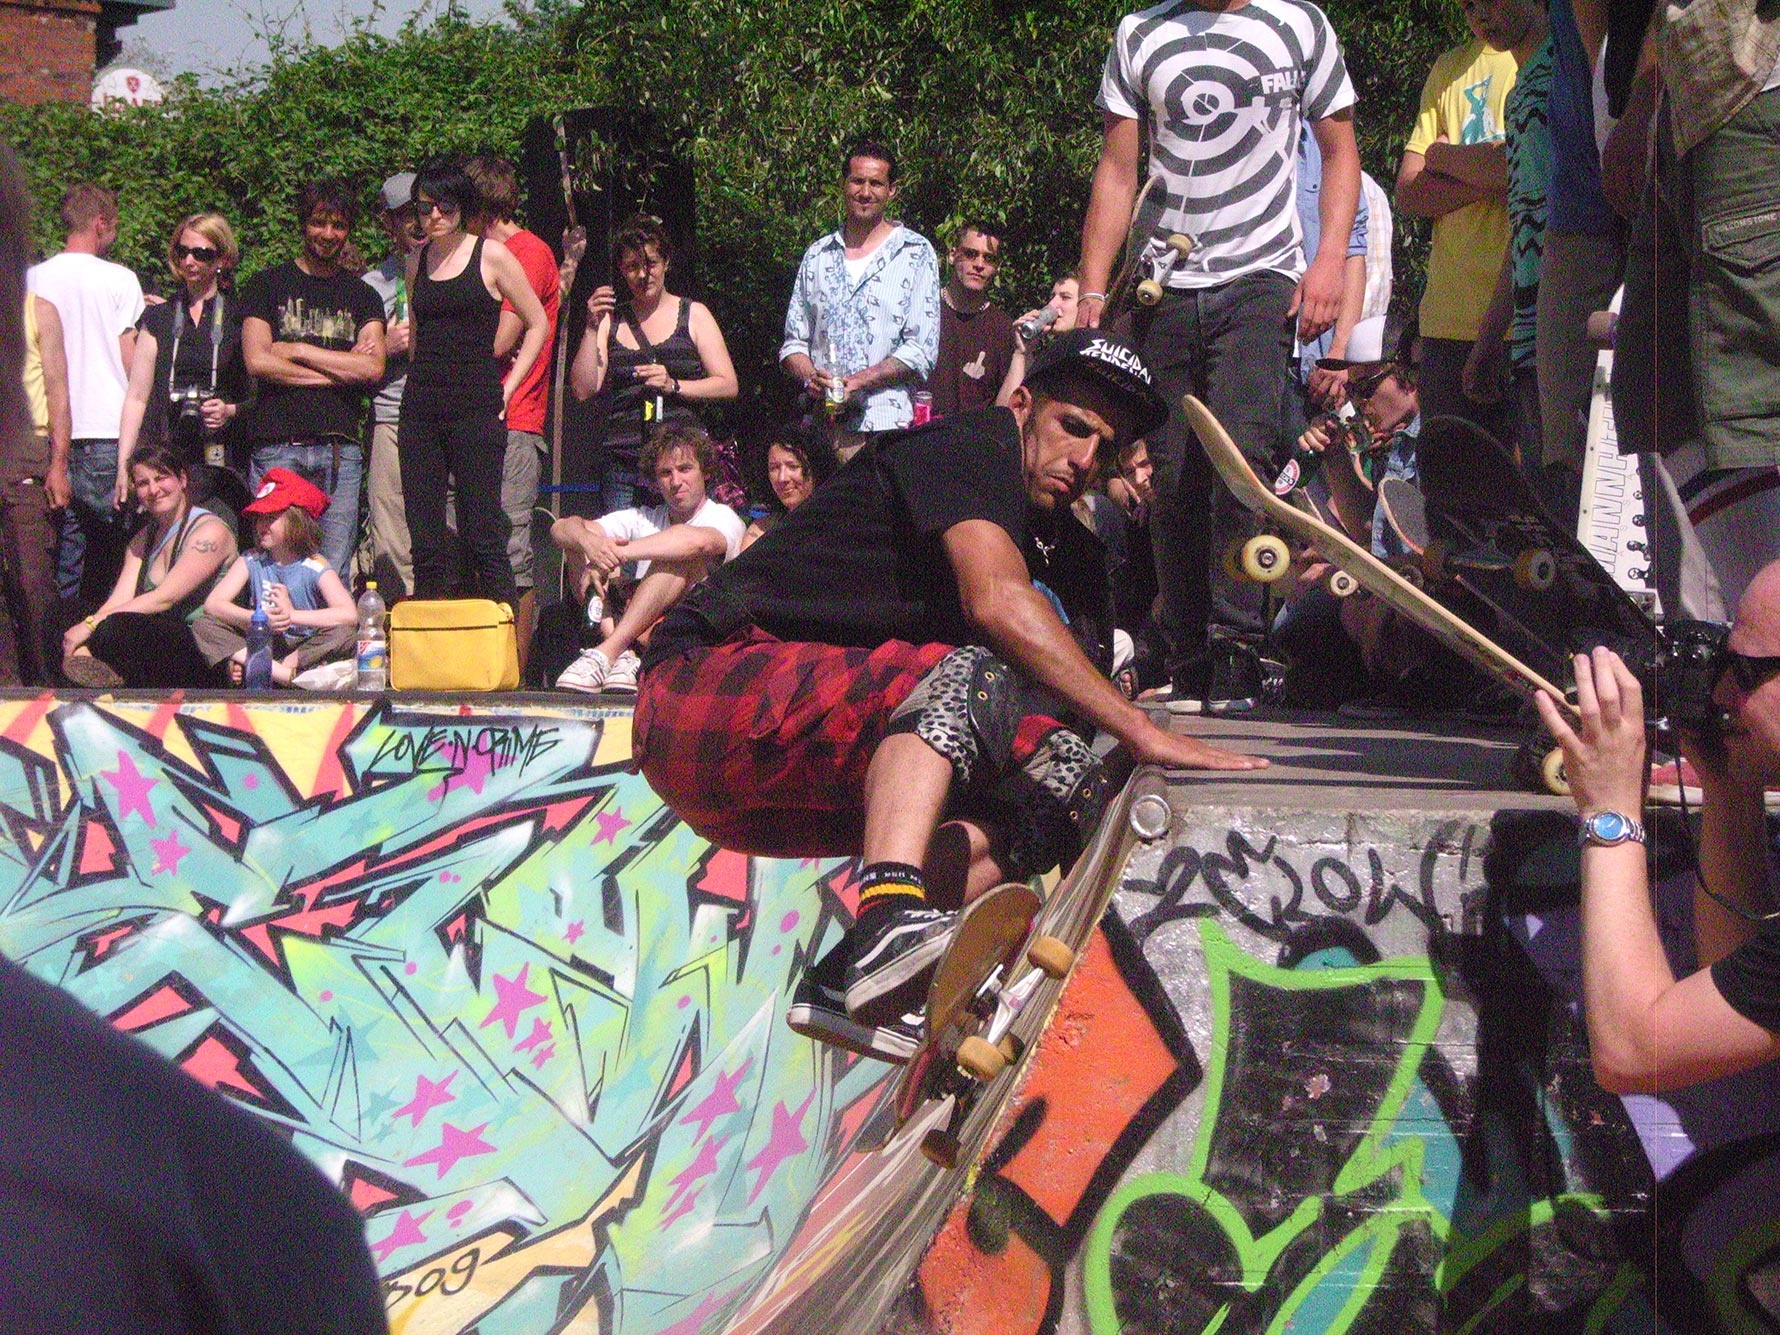 Der Skatecontest